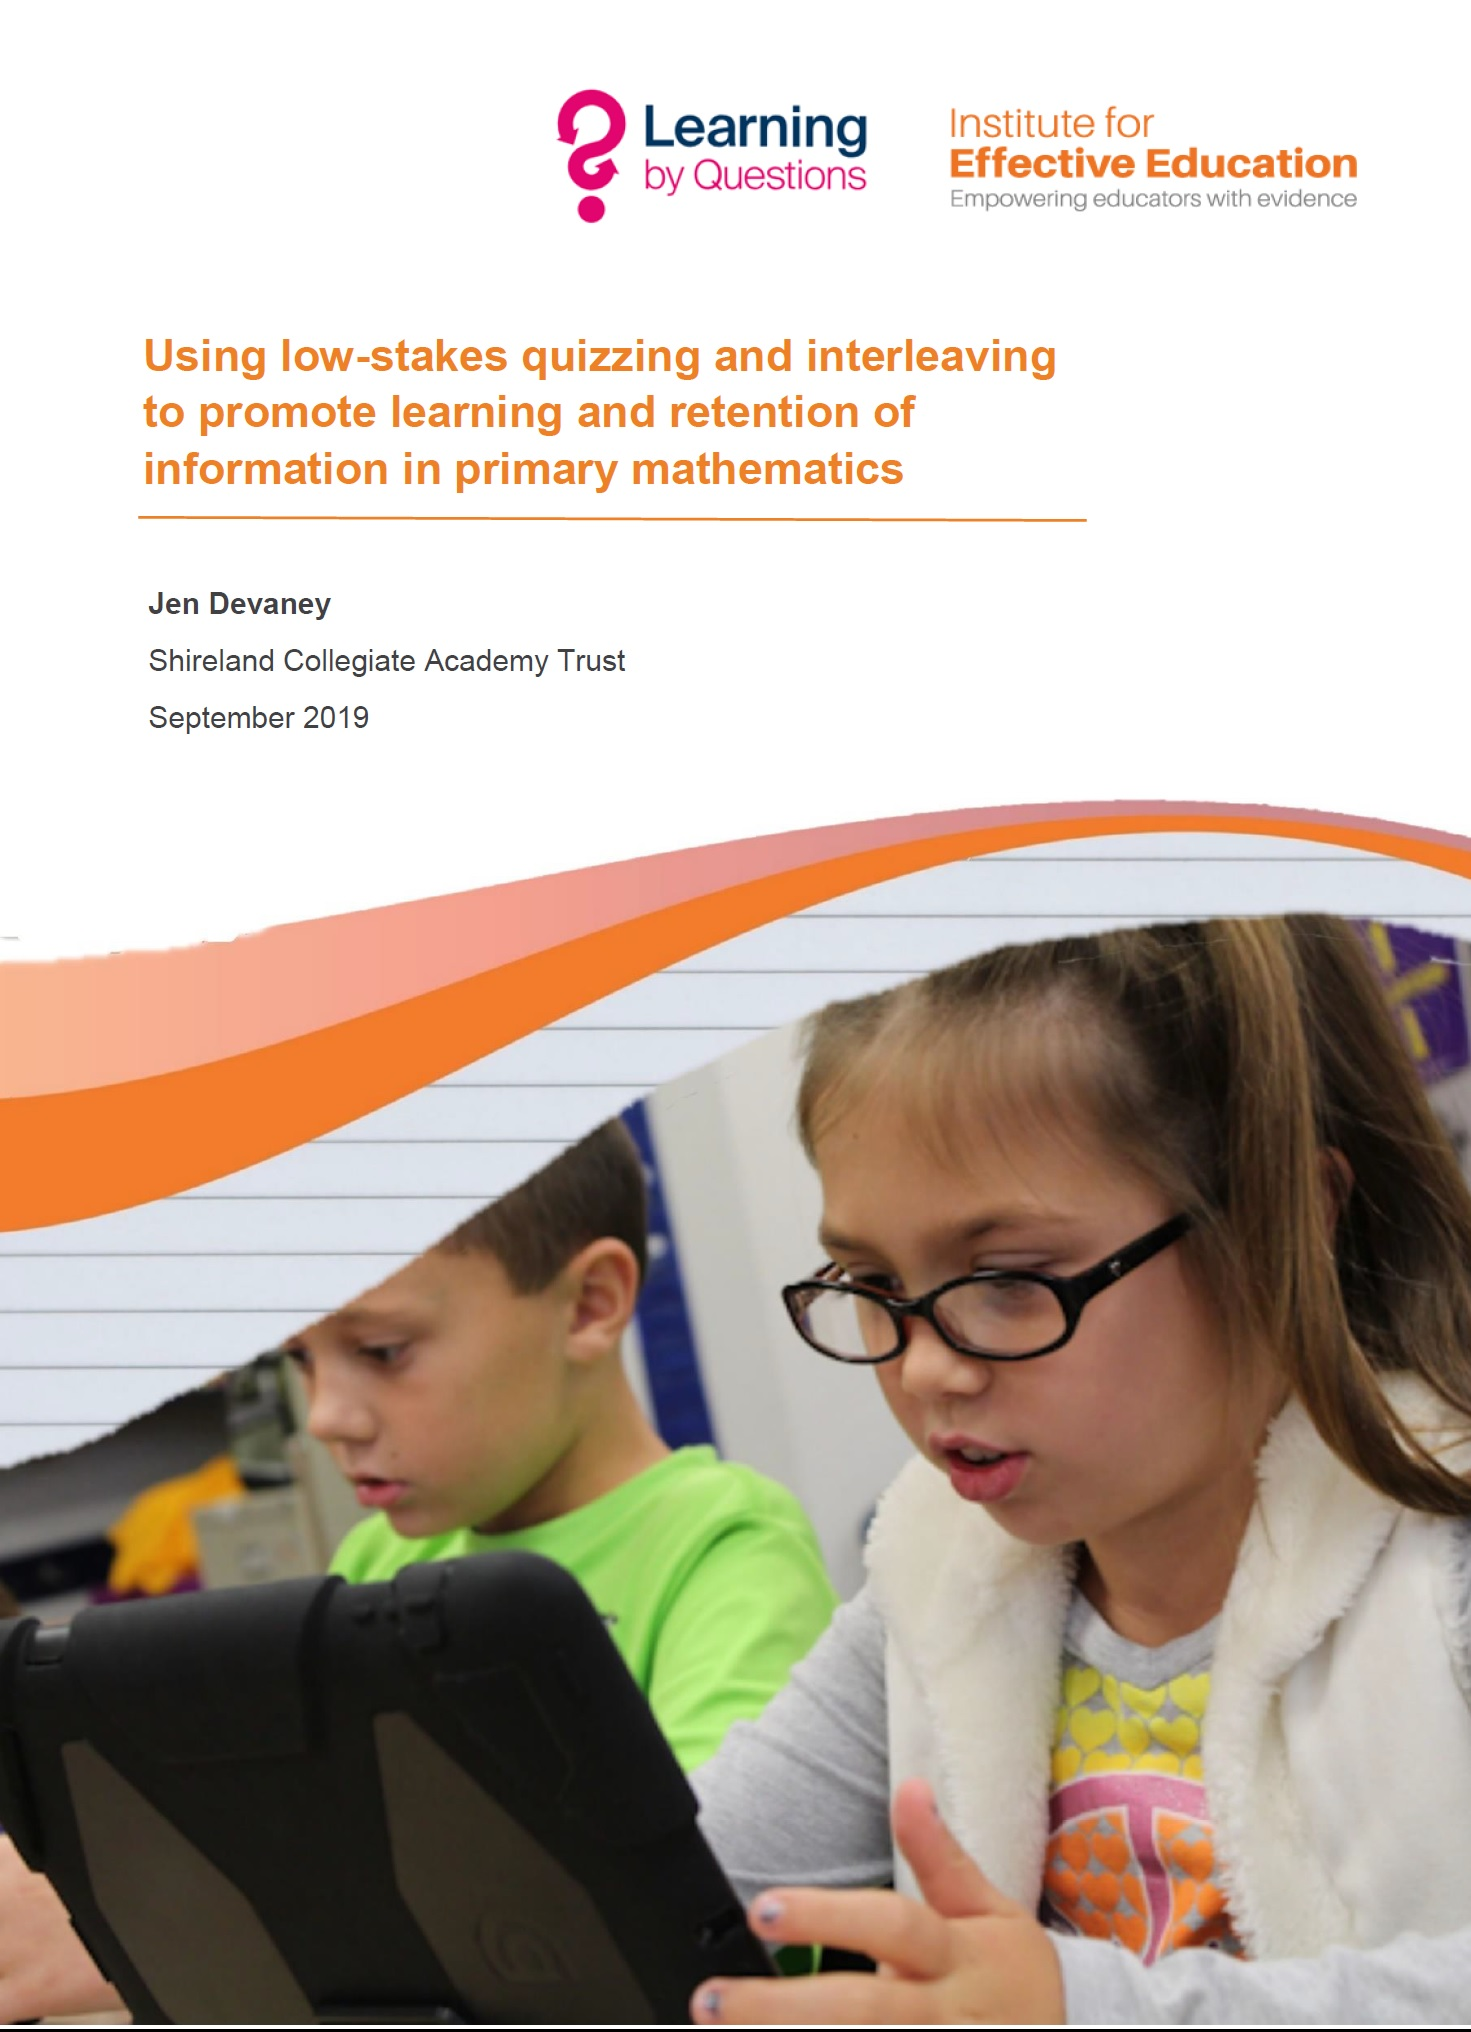 Using low-stakes quizzing and interleaving to promote learning and retention of information in primary mathematics